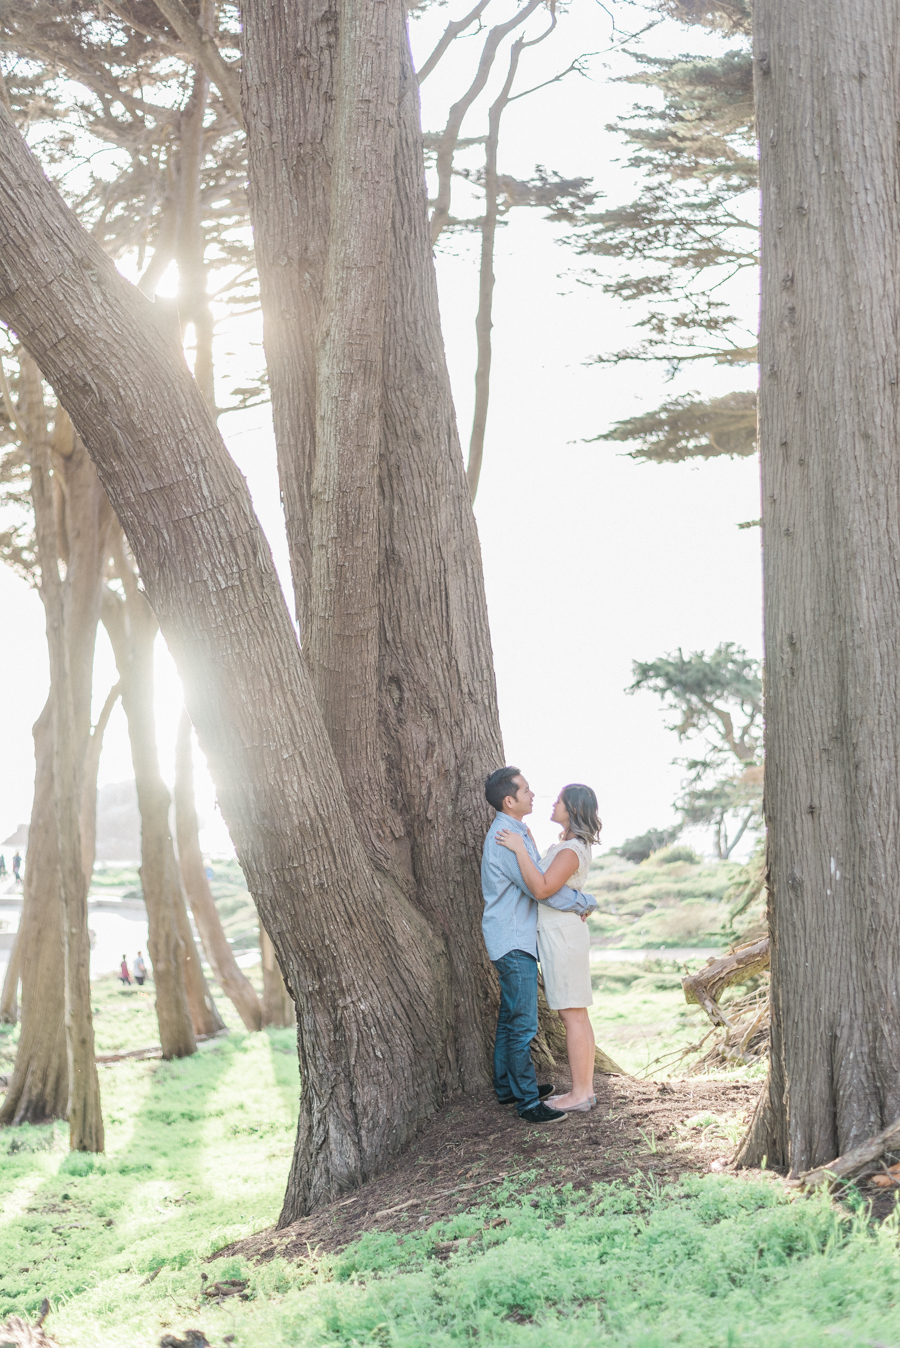 Epiphany Photography Fanny Huynh- San Francisco Engagement Session-8